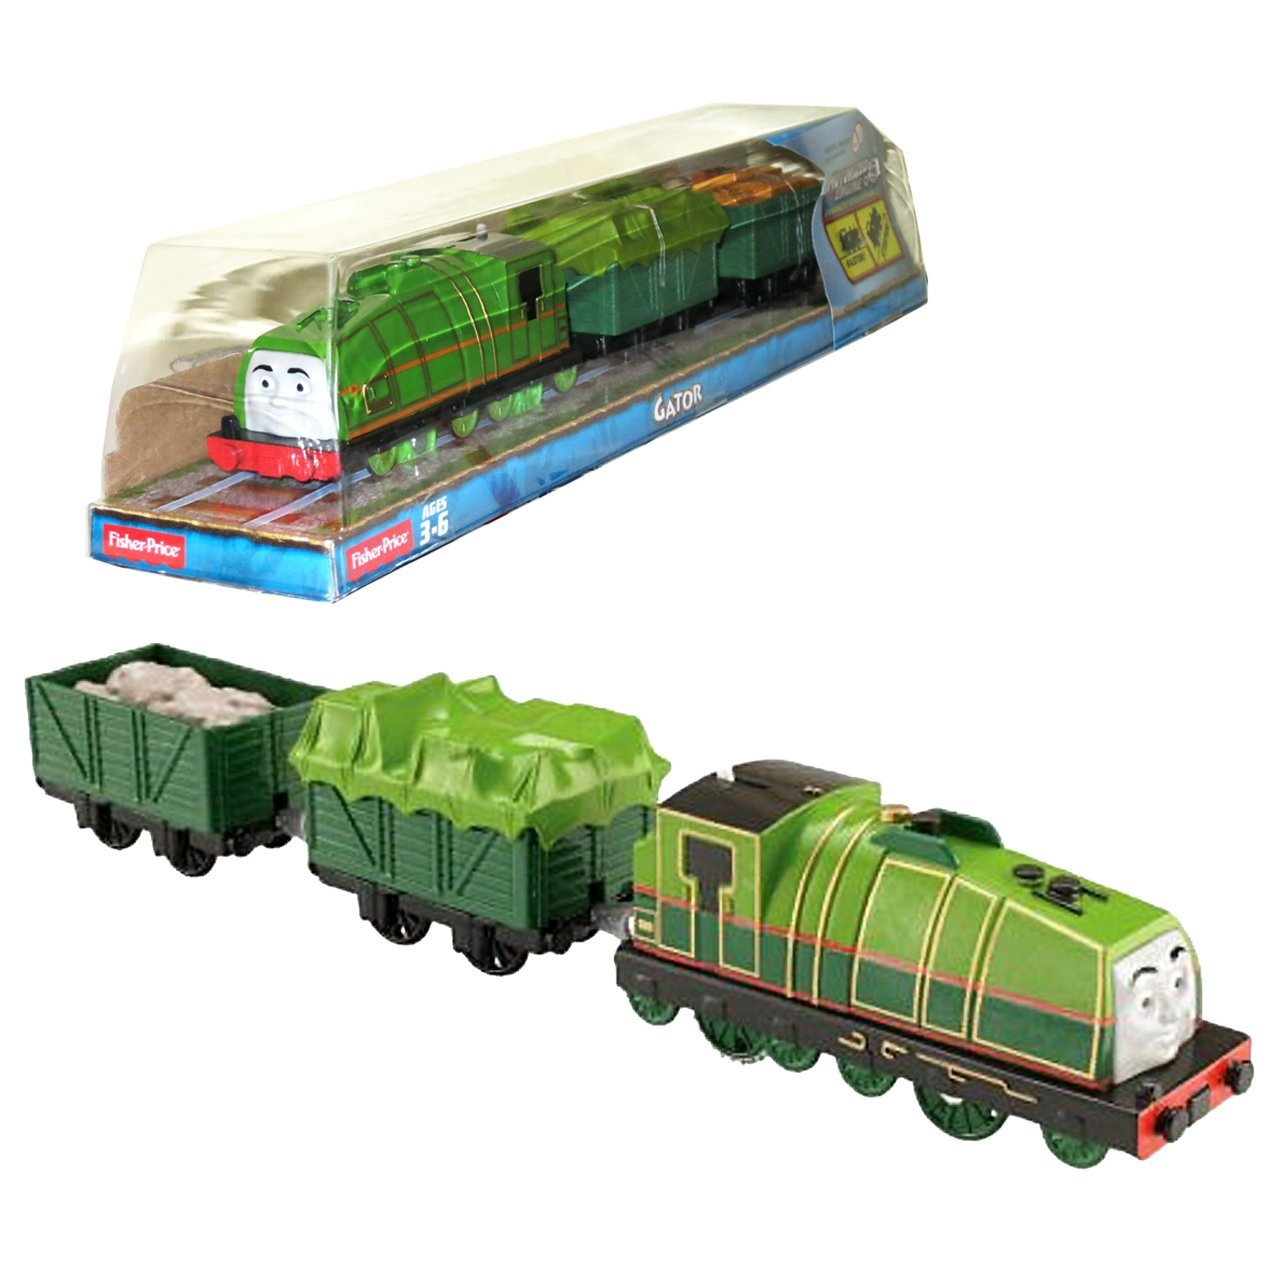 """Fisher Price Year 2014 Thomas and Friends Trackmaster As Seen on DVD """" Tale of the Brave"""" Enhanced Motorized Railway Battery Powered Engine 3 Pack Train Set - GATOR the Green Color Steam Locomotive with Tarp Covered Car and """"Cargo Loaded"""" Car"""